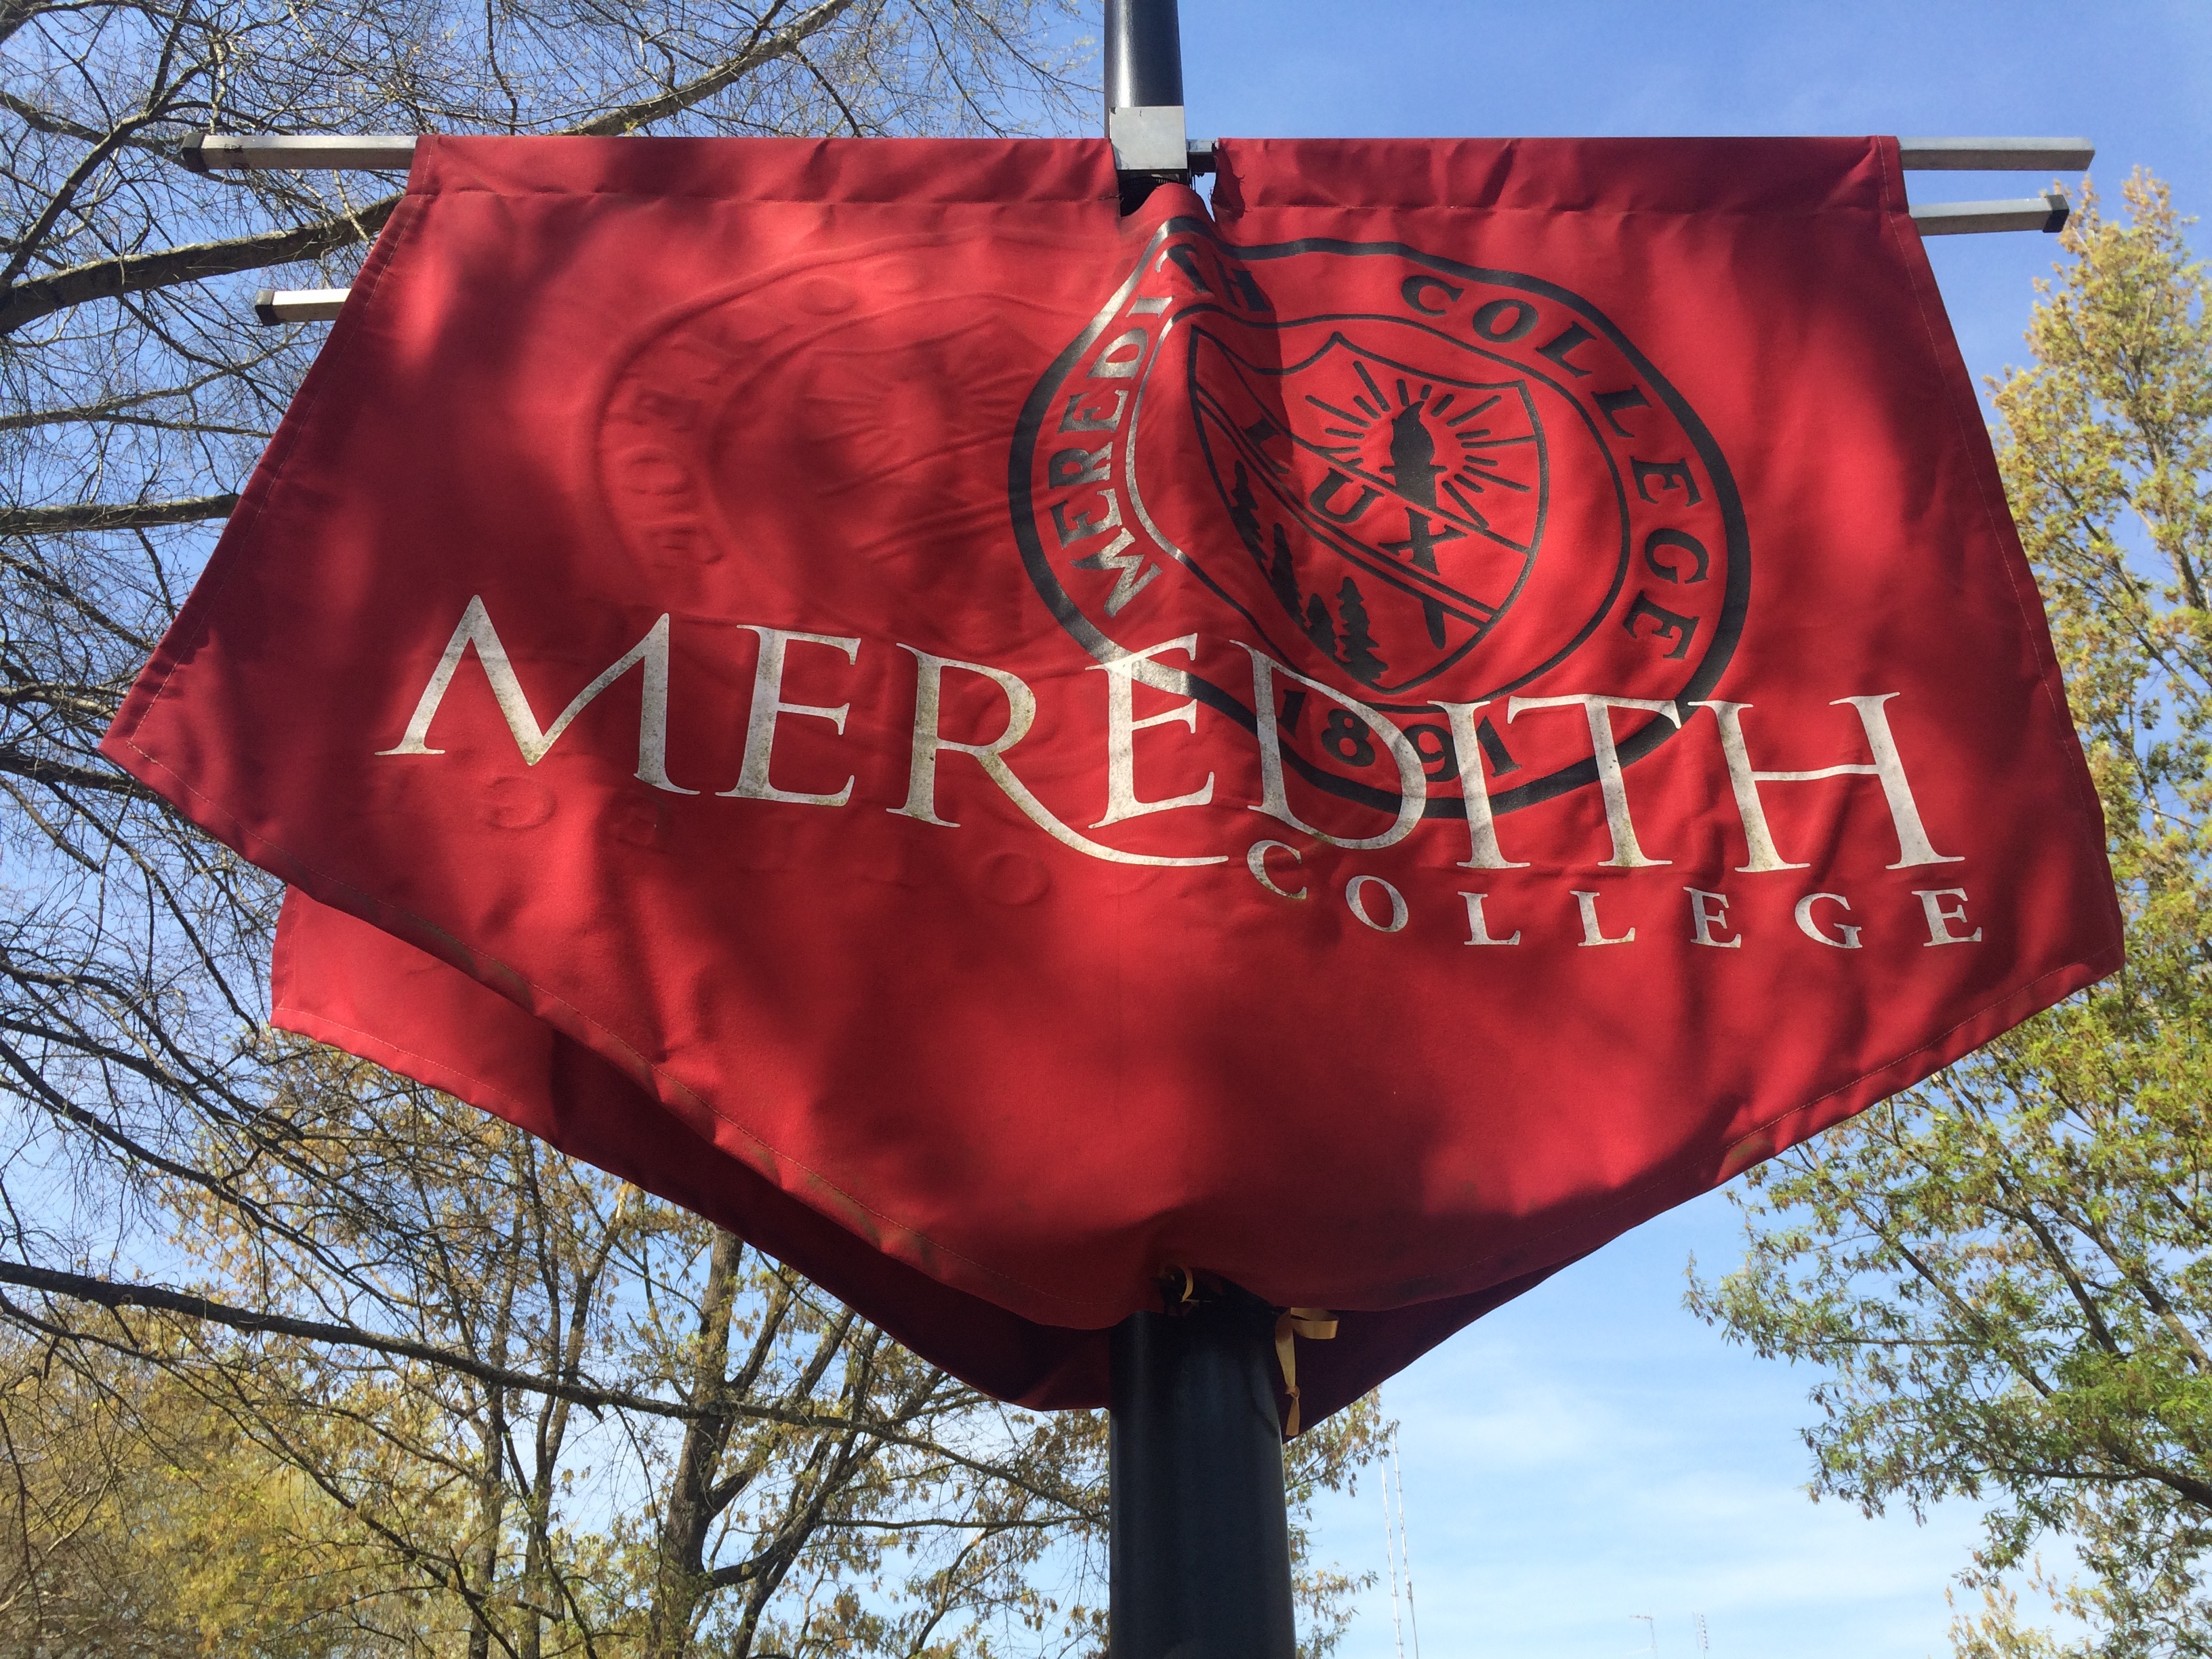 Displaying Meredith's colors and seal, these flags are located across the campus.